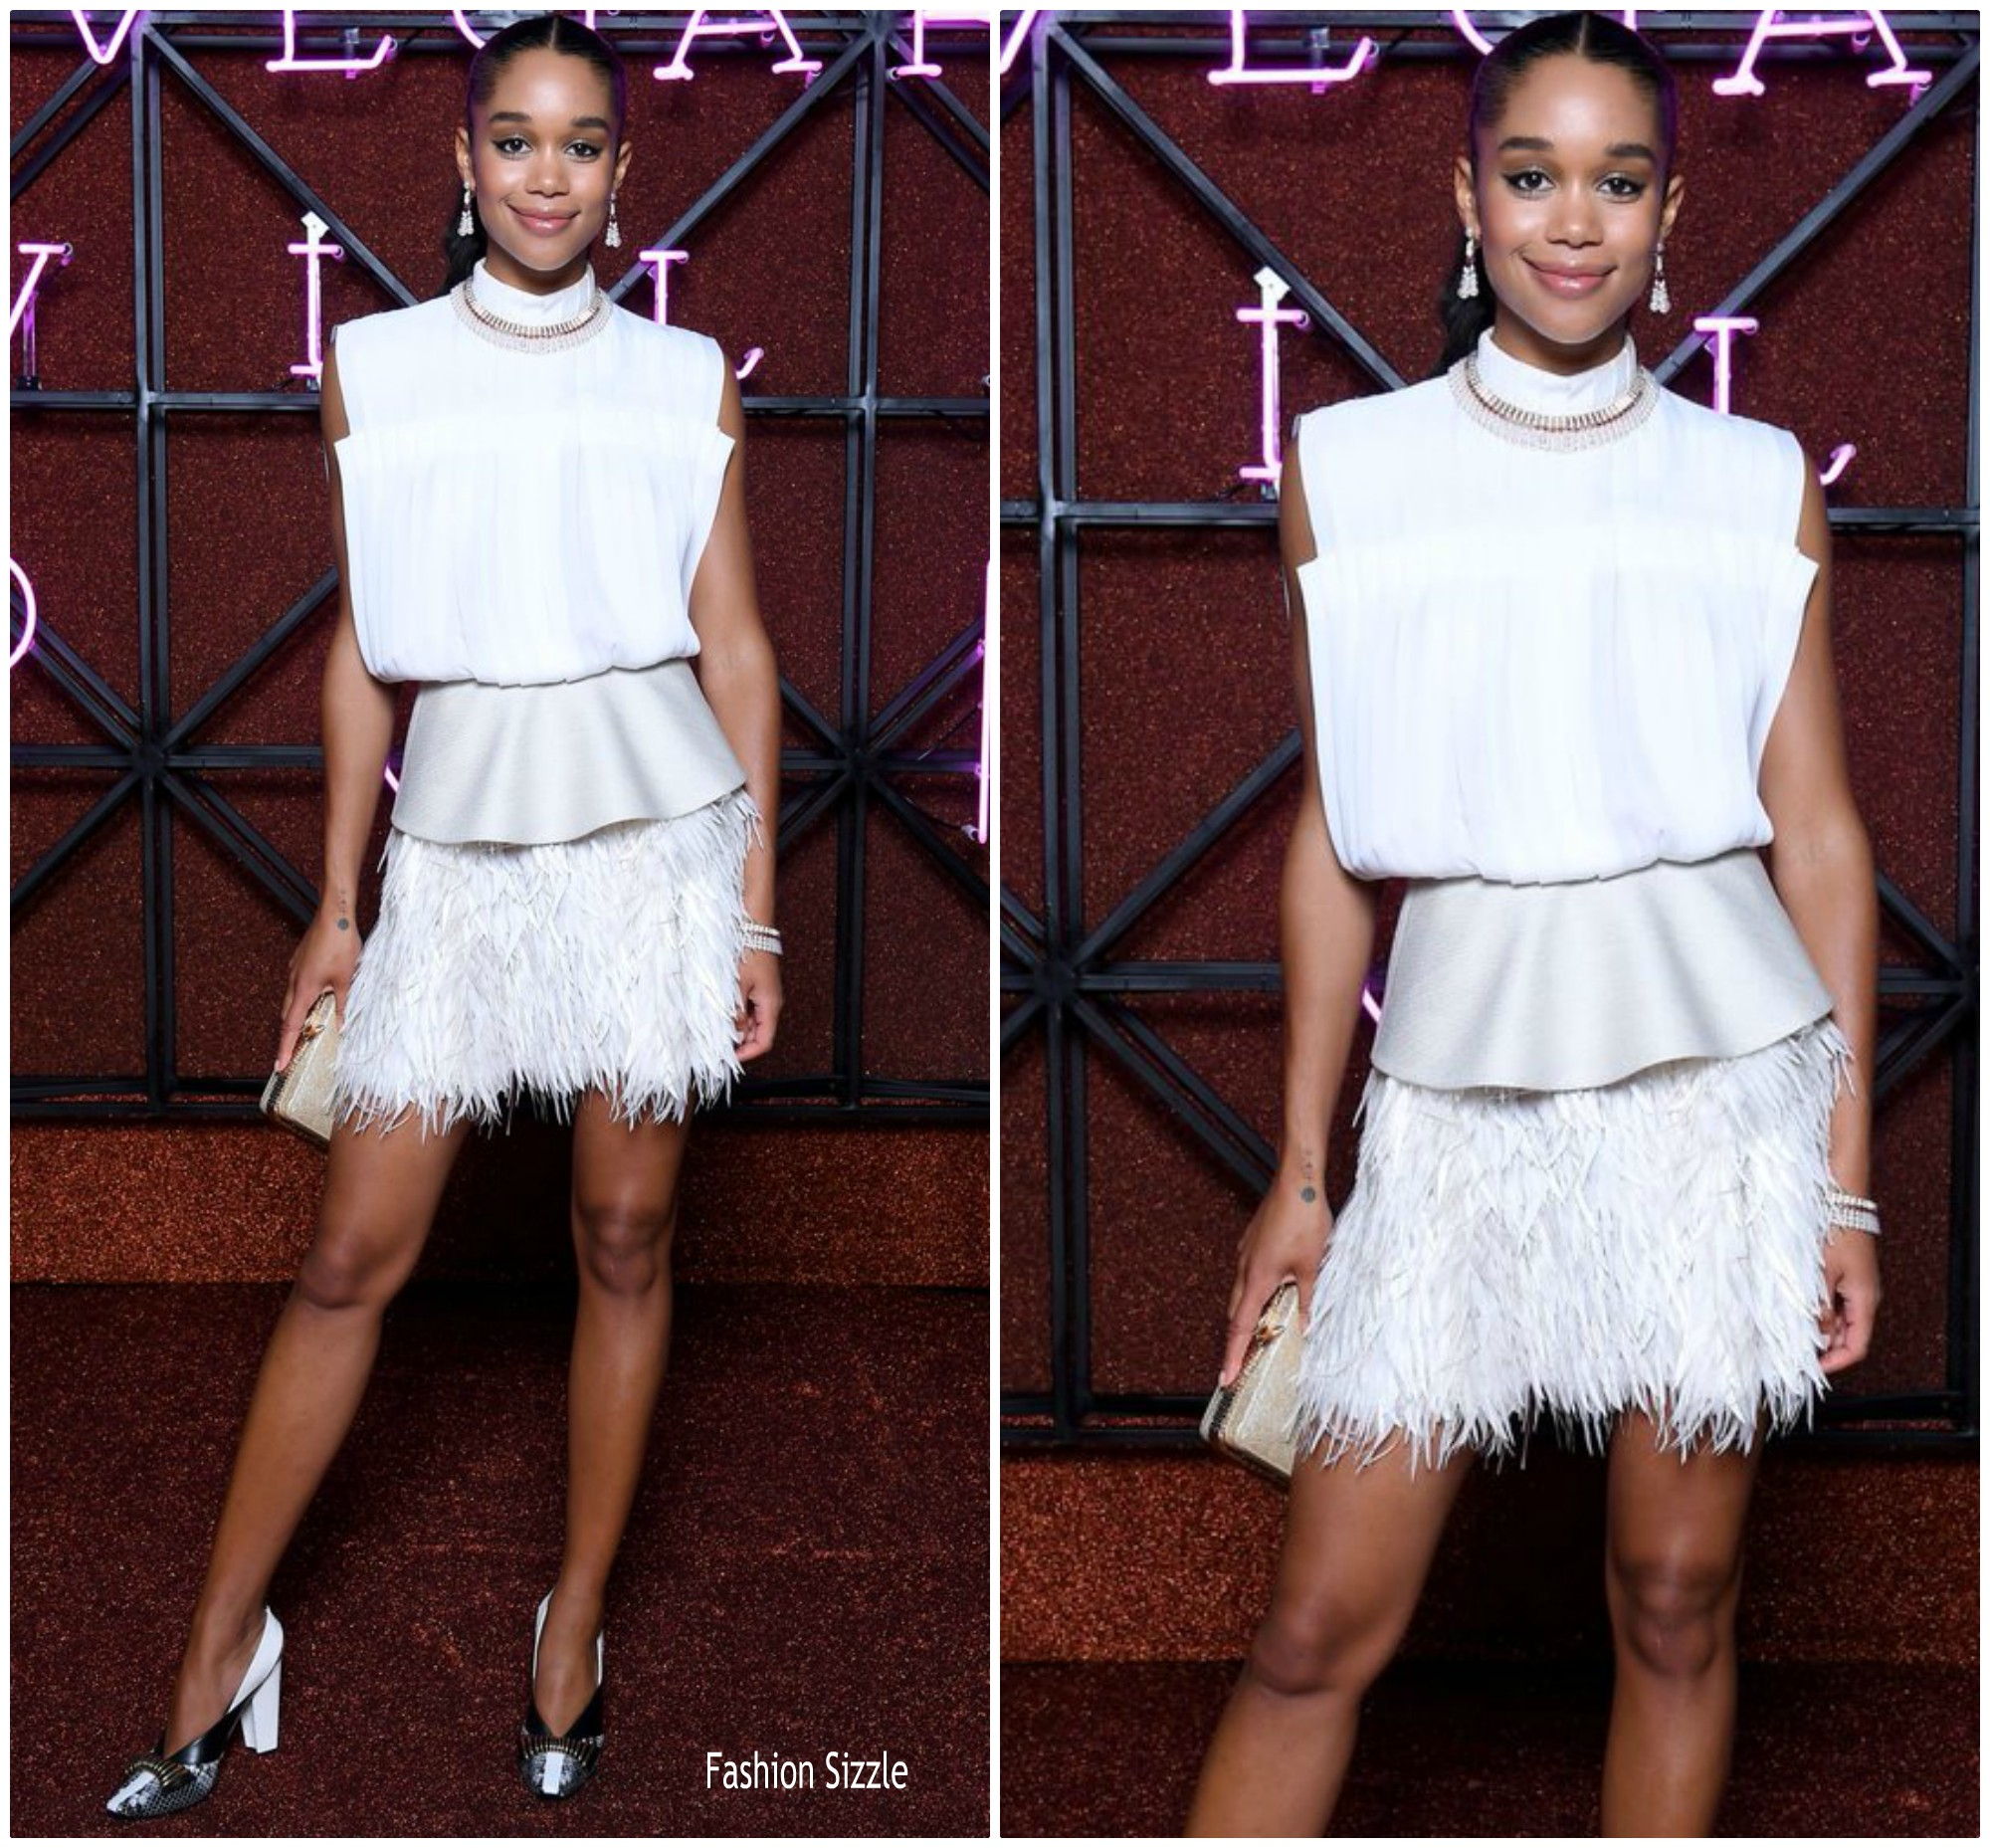 laura-harrier-in-louis-vuitton-bvlgari-dinner-party